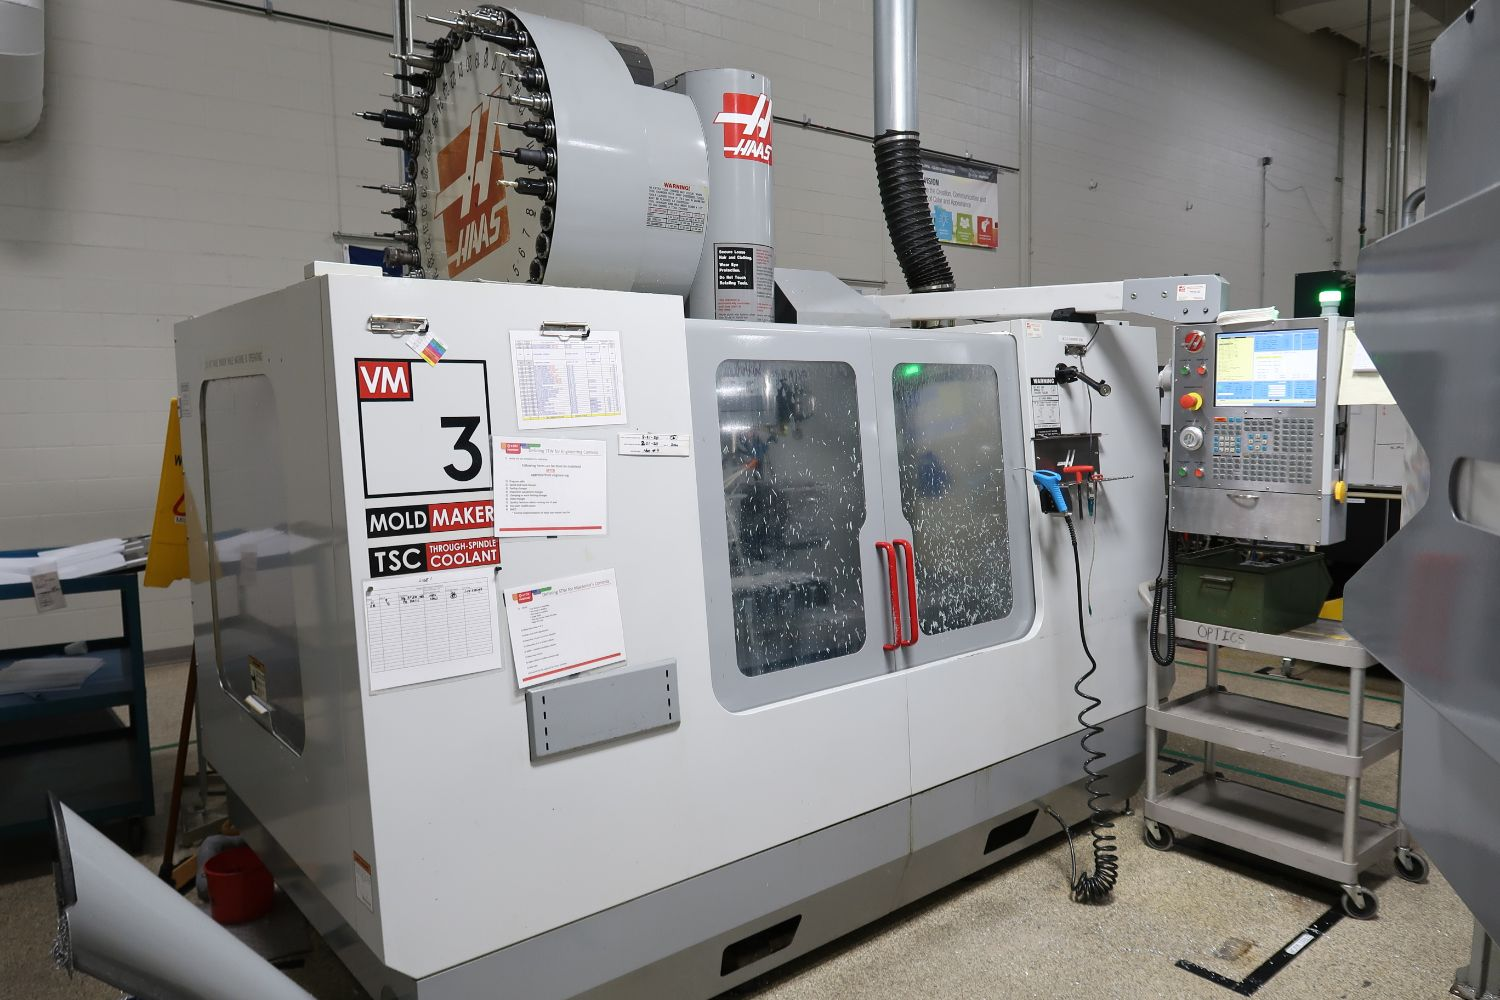 Surplus to the Ongoing Operations of X-Rite - Very Clean CNC Machinery